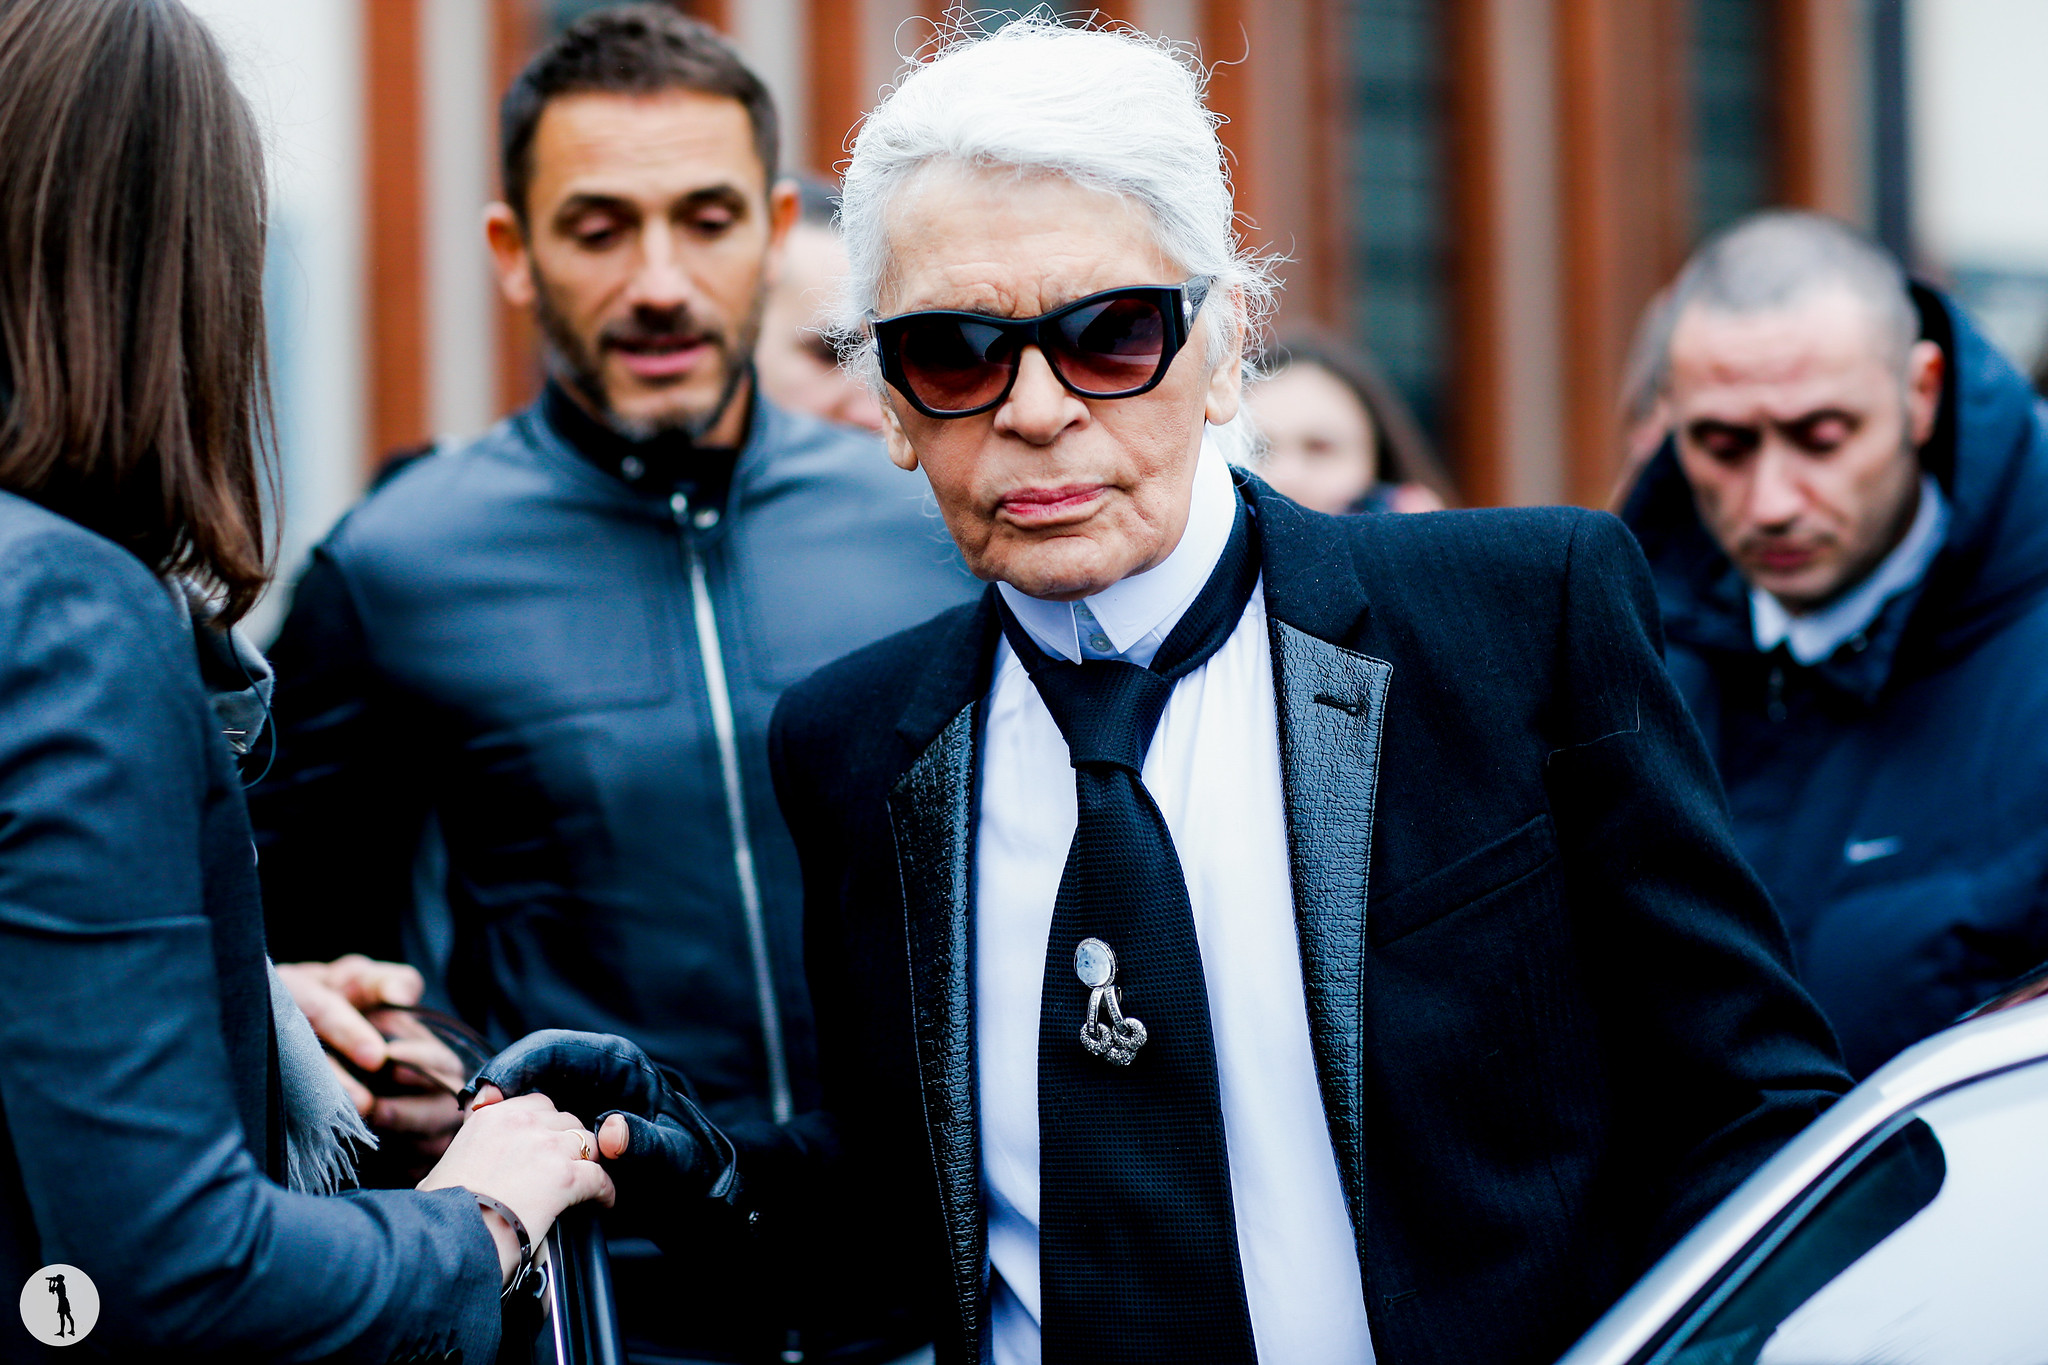 Karl Lagerfeld at Paris Fashion Week Menswear-3